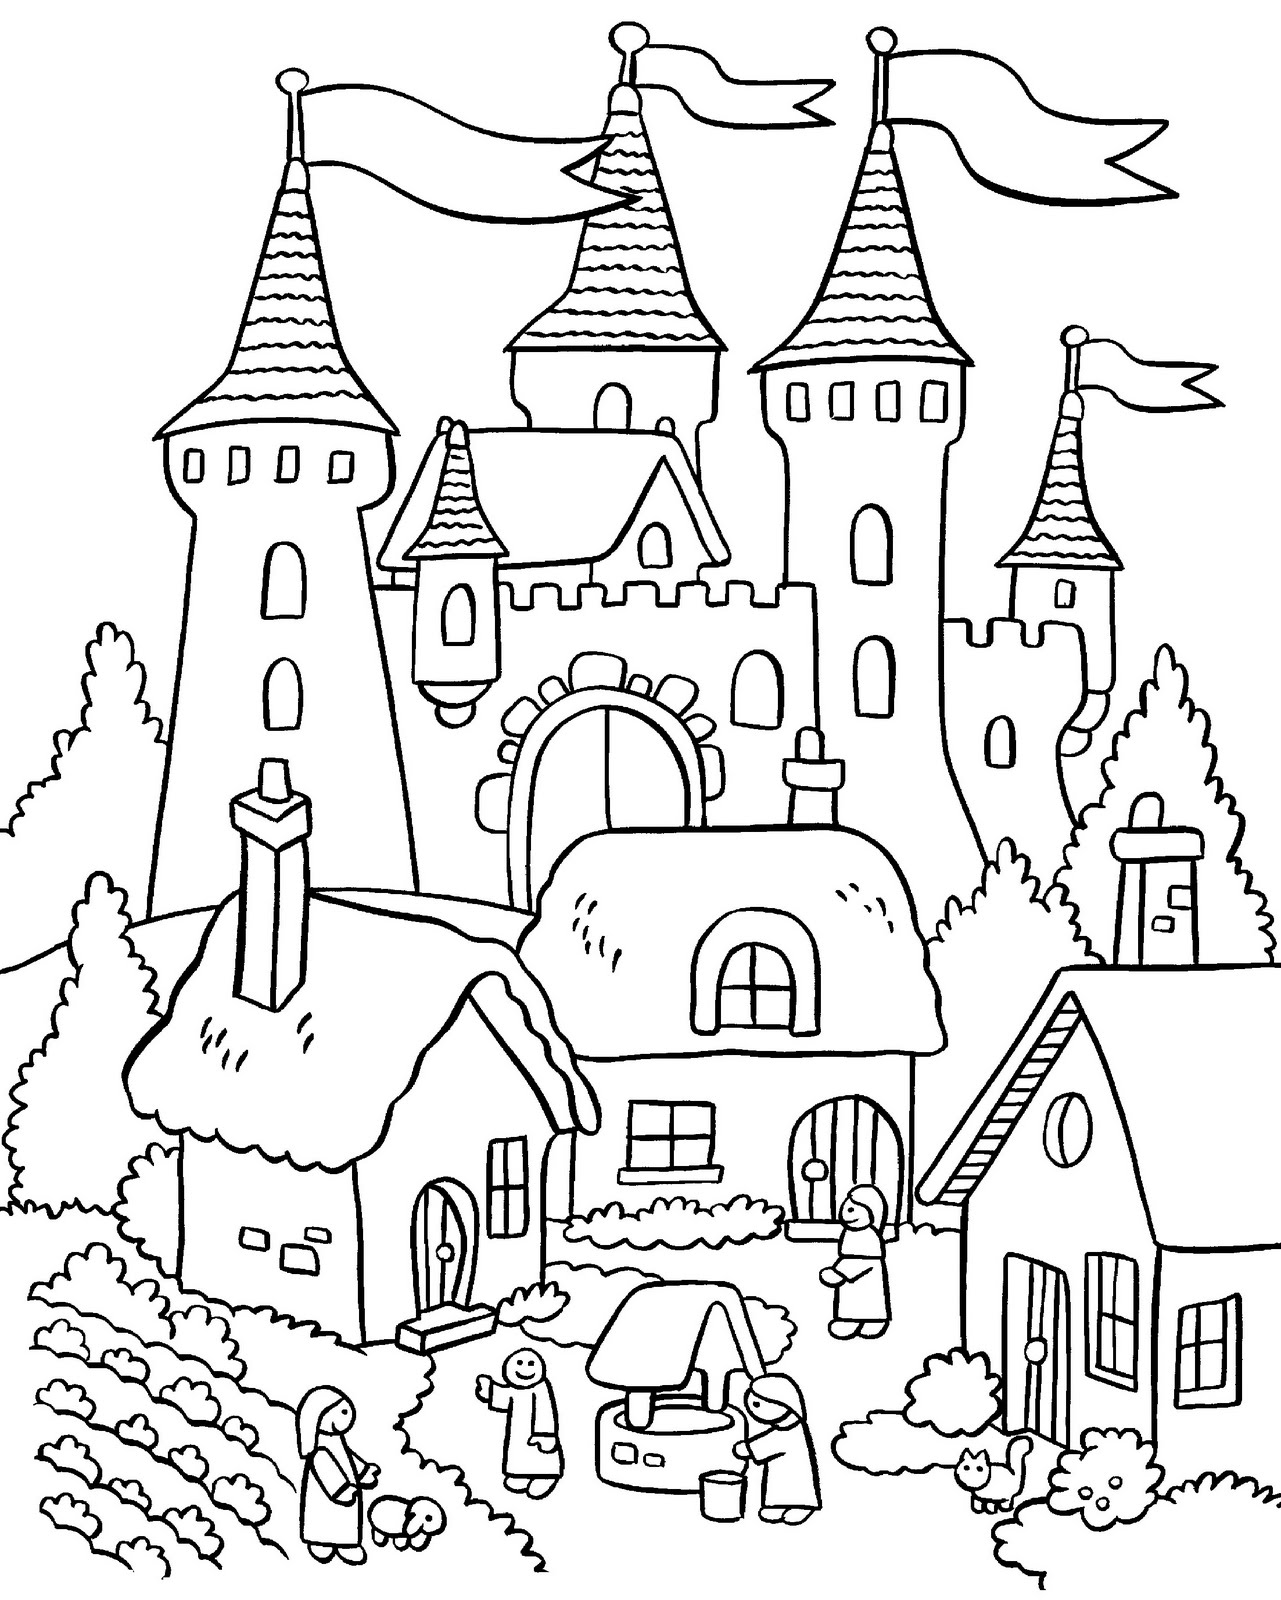 coloring pages free horticulture - photo#36